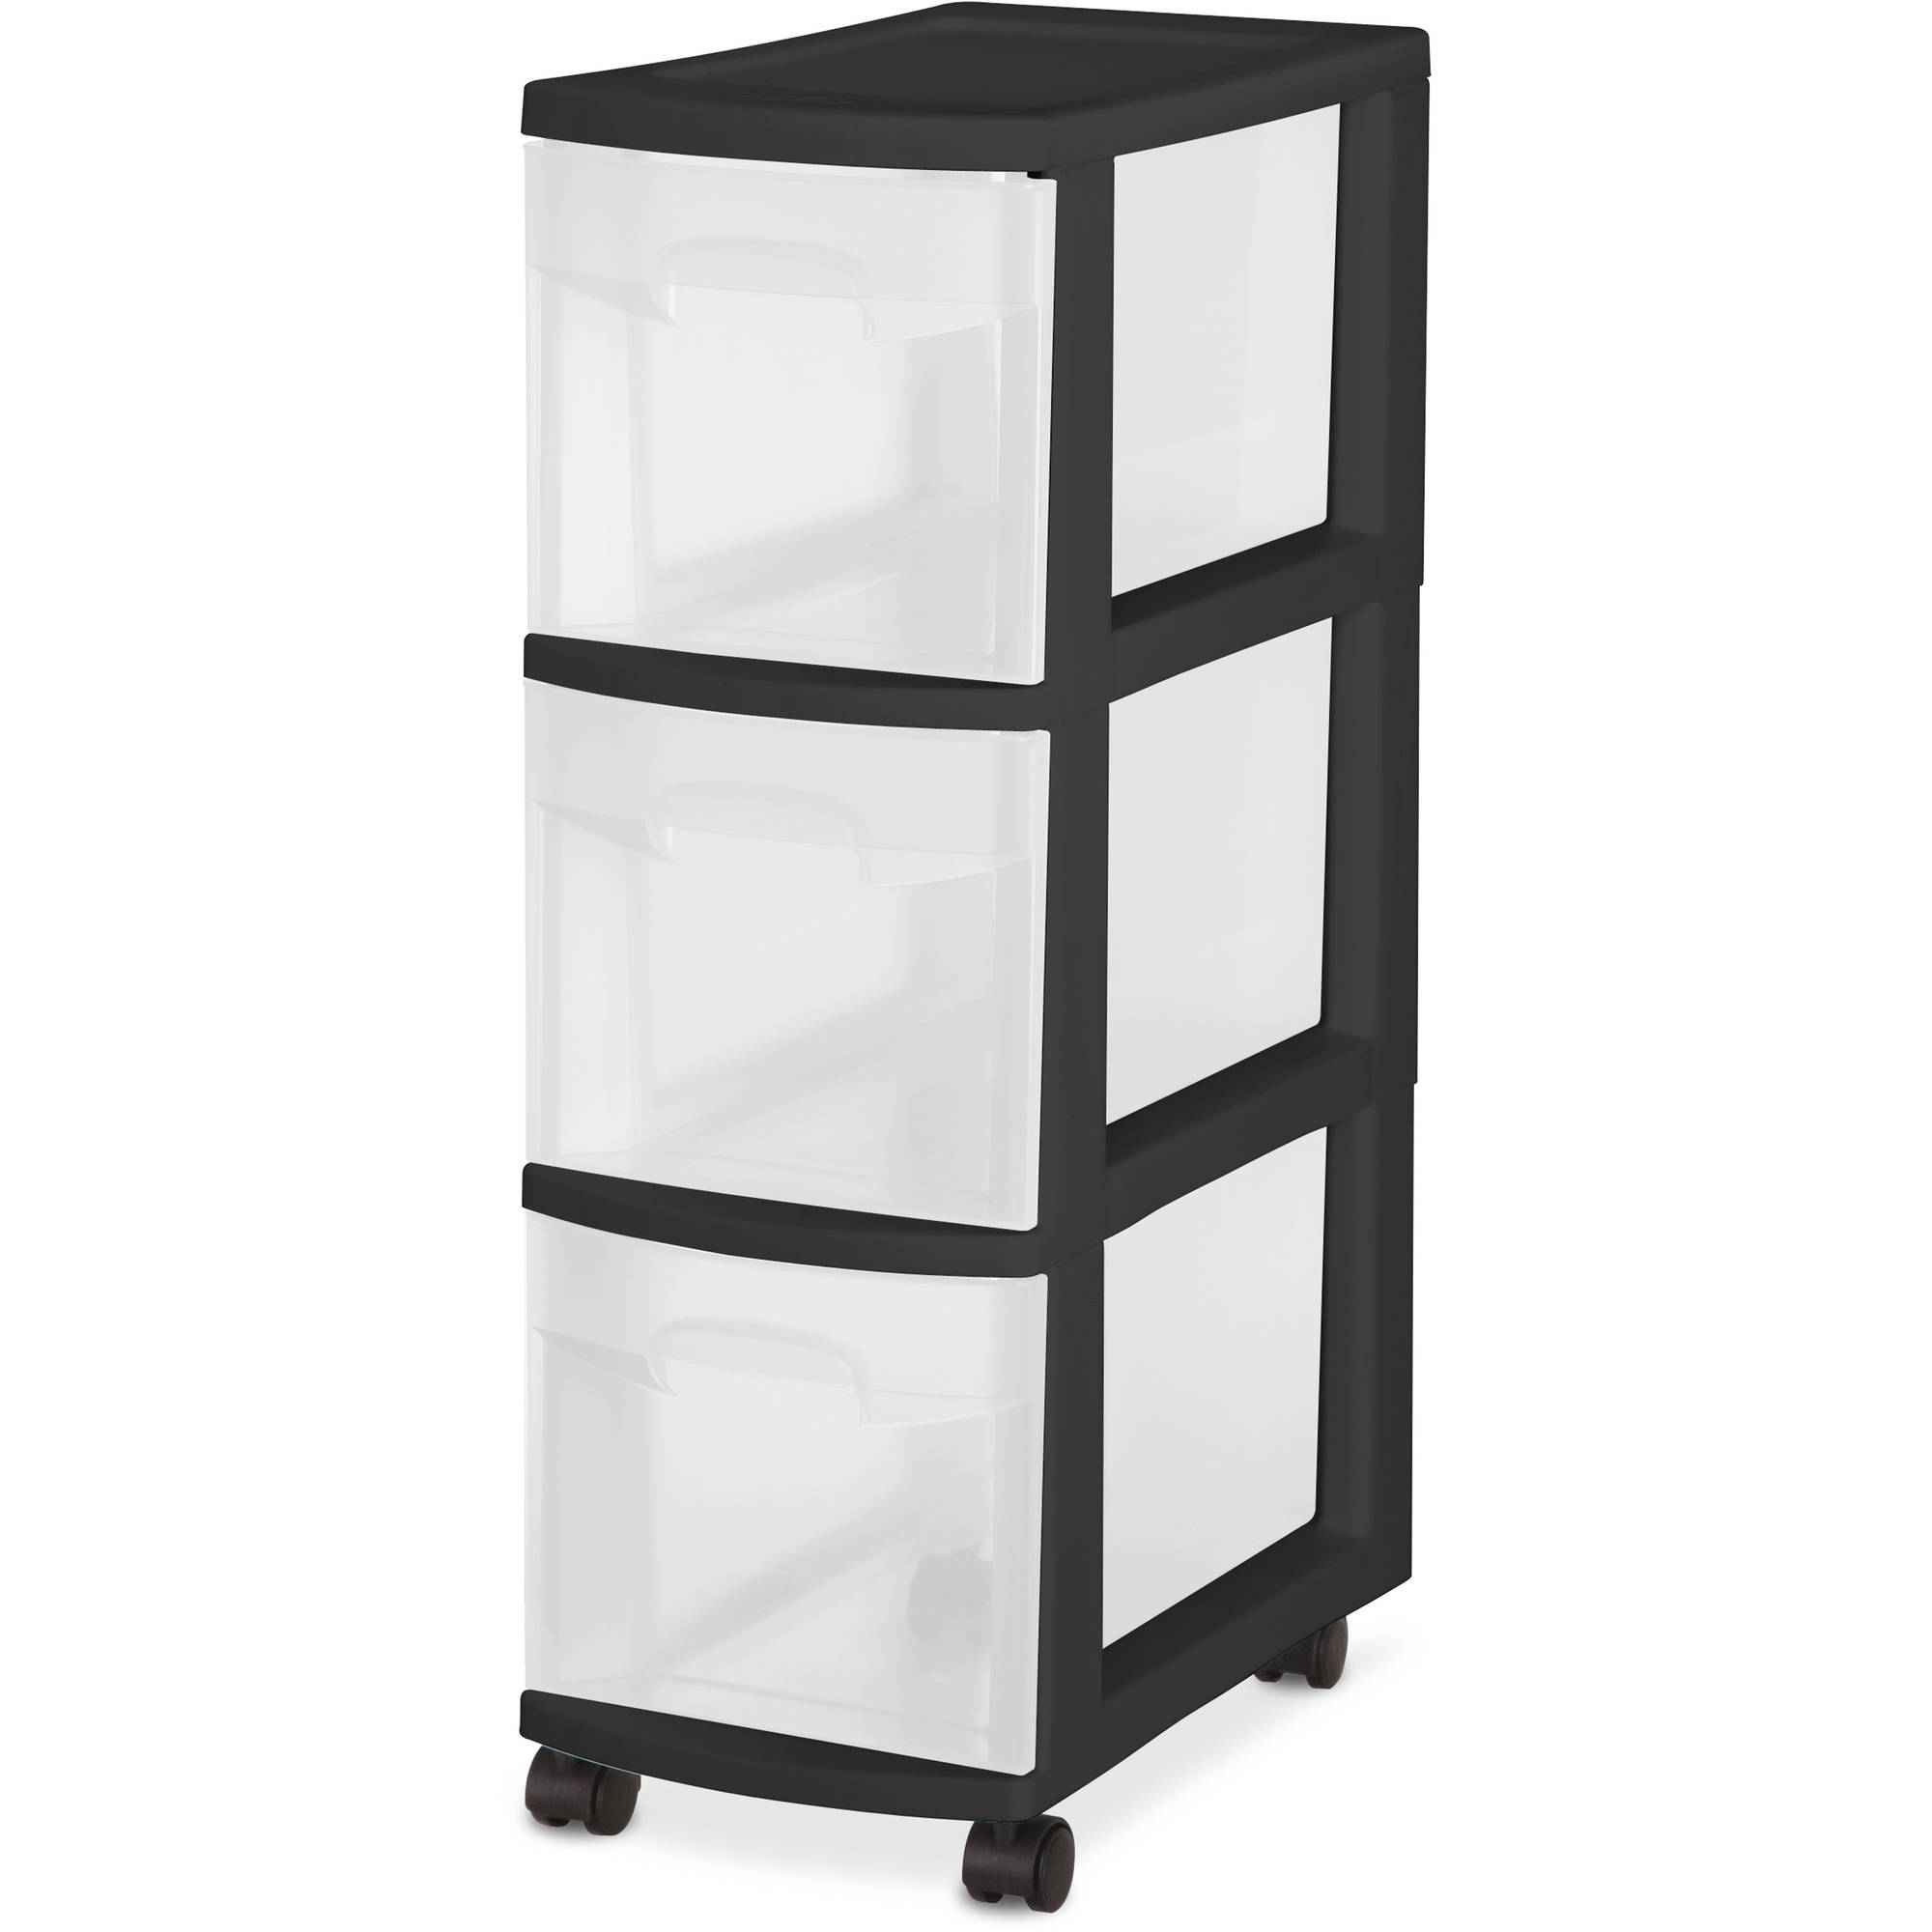 Sterilite 3 Drawer Narrow Cart- Black, Set of 3